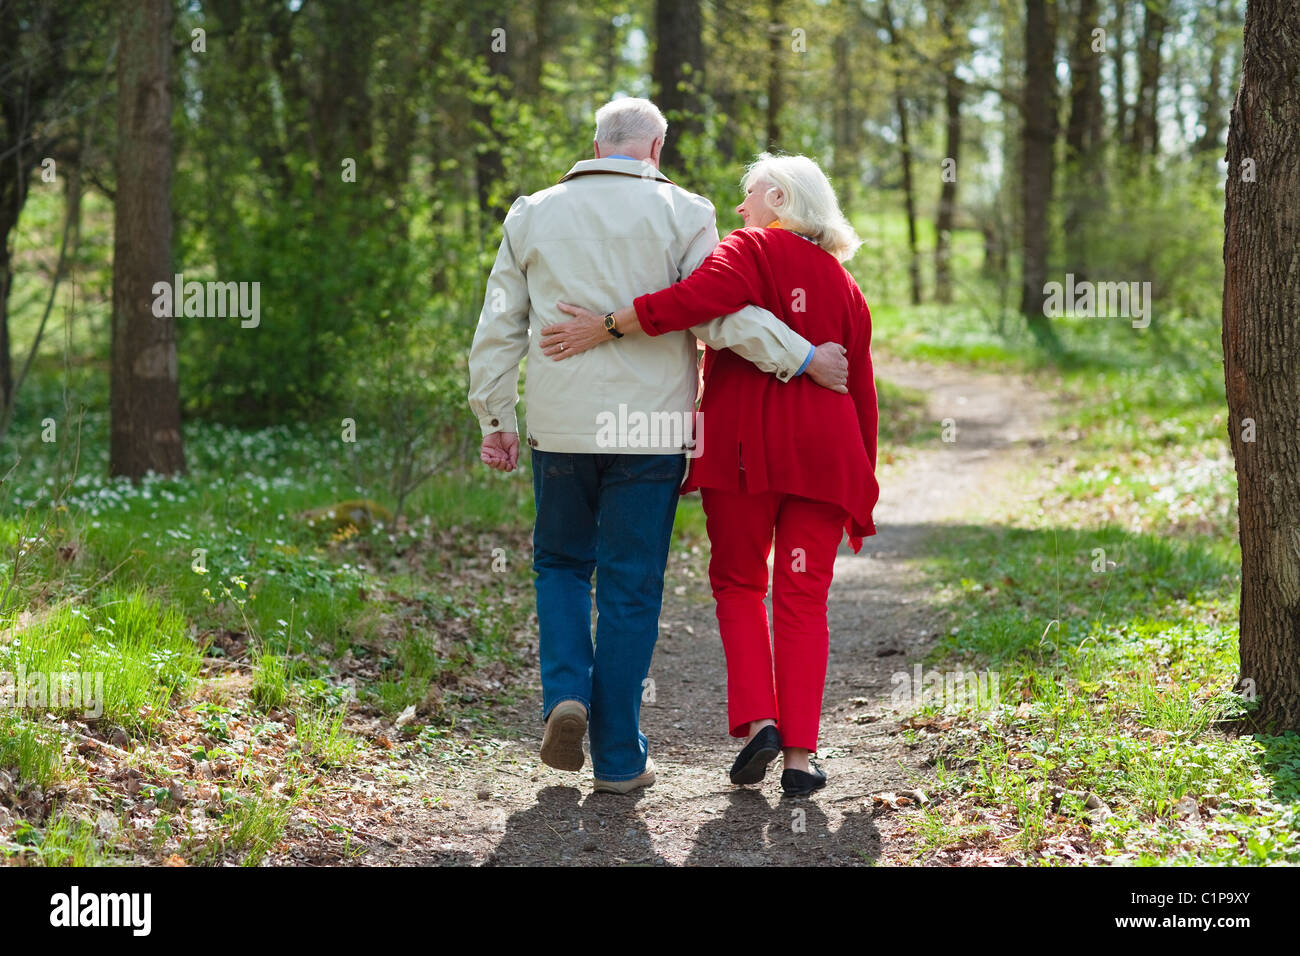 Senior couple embracing in park - Stock Image